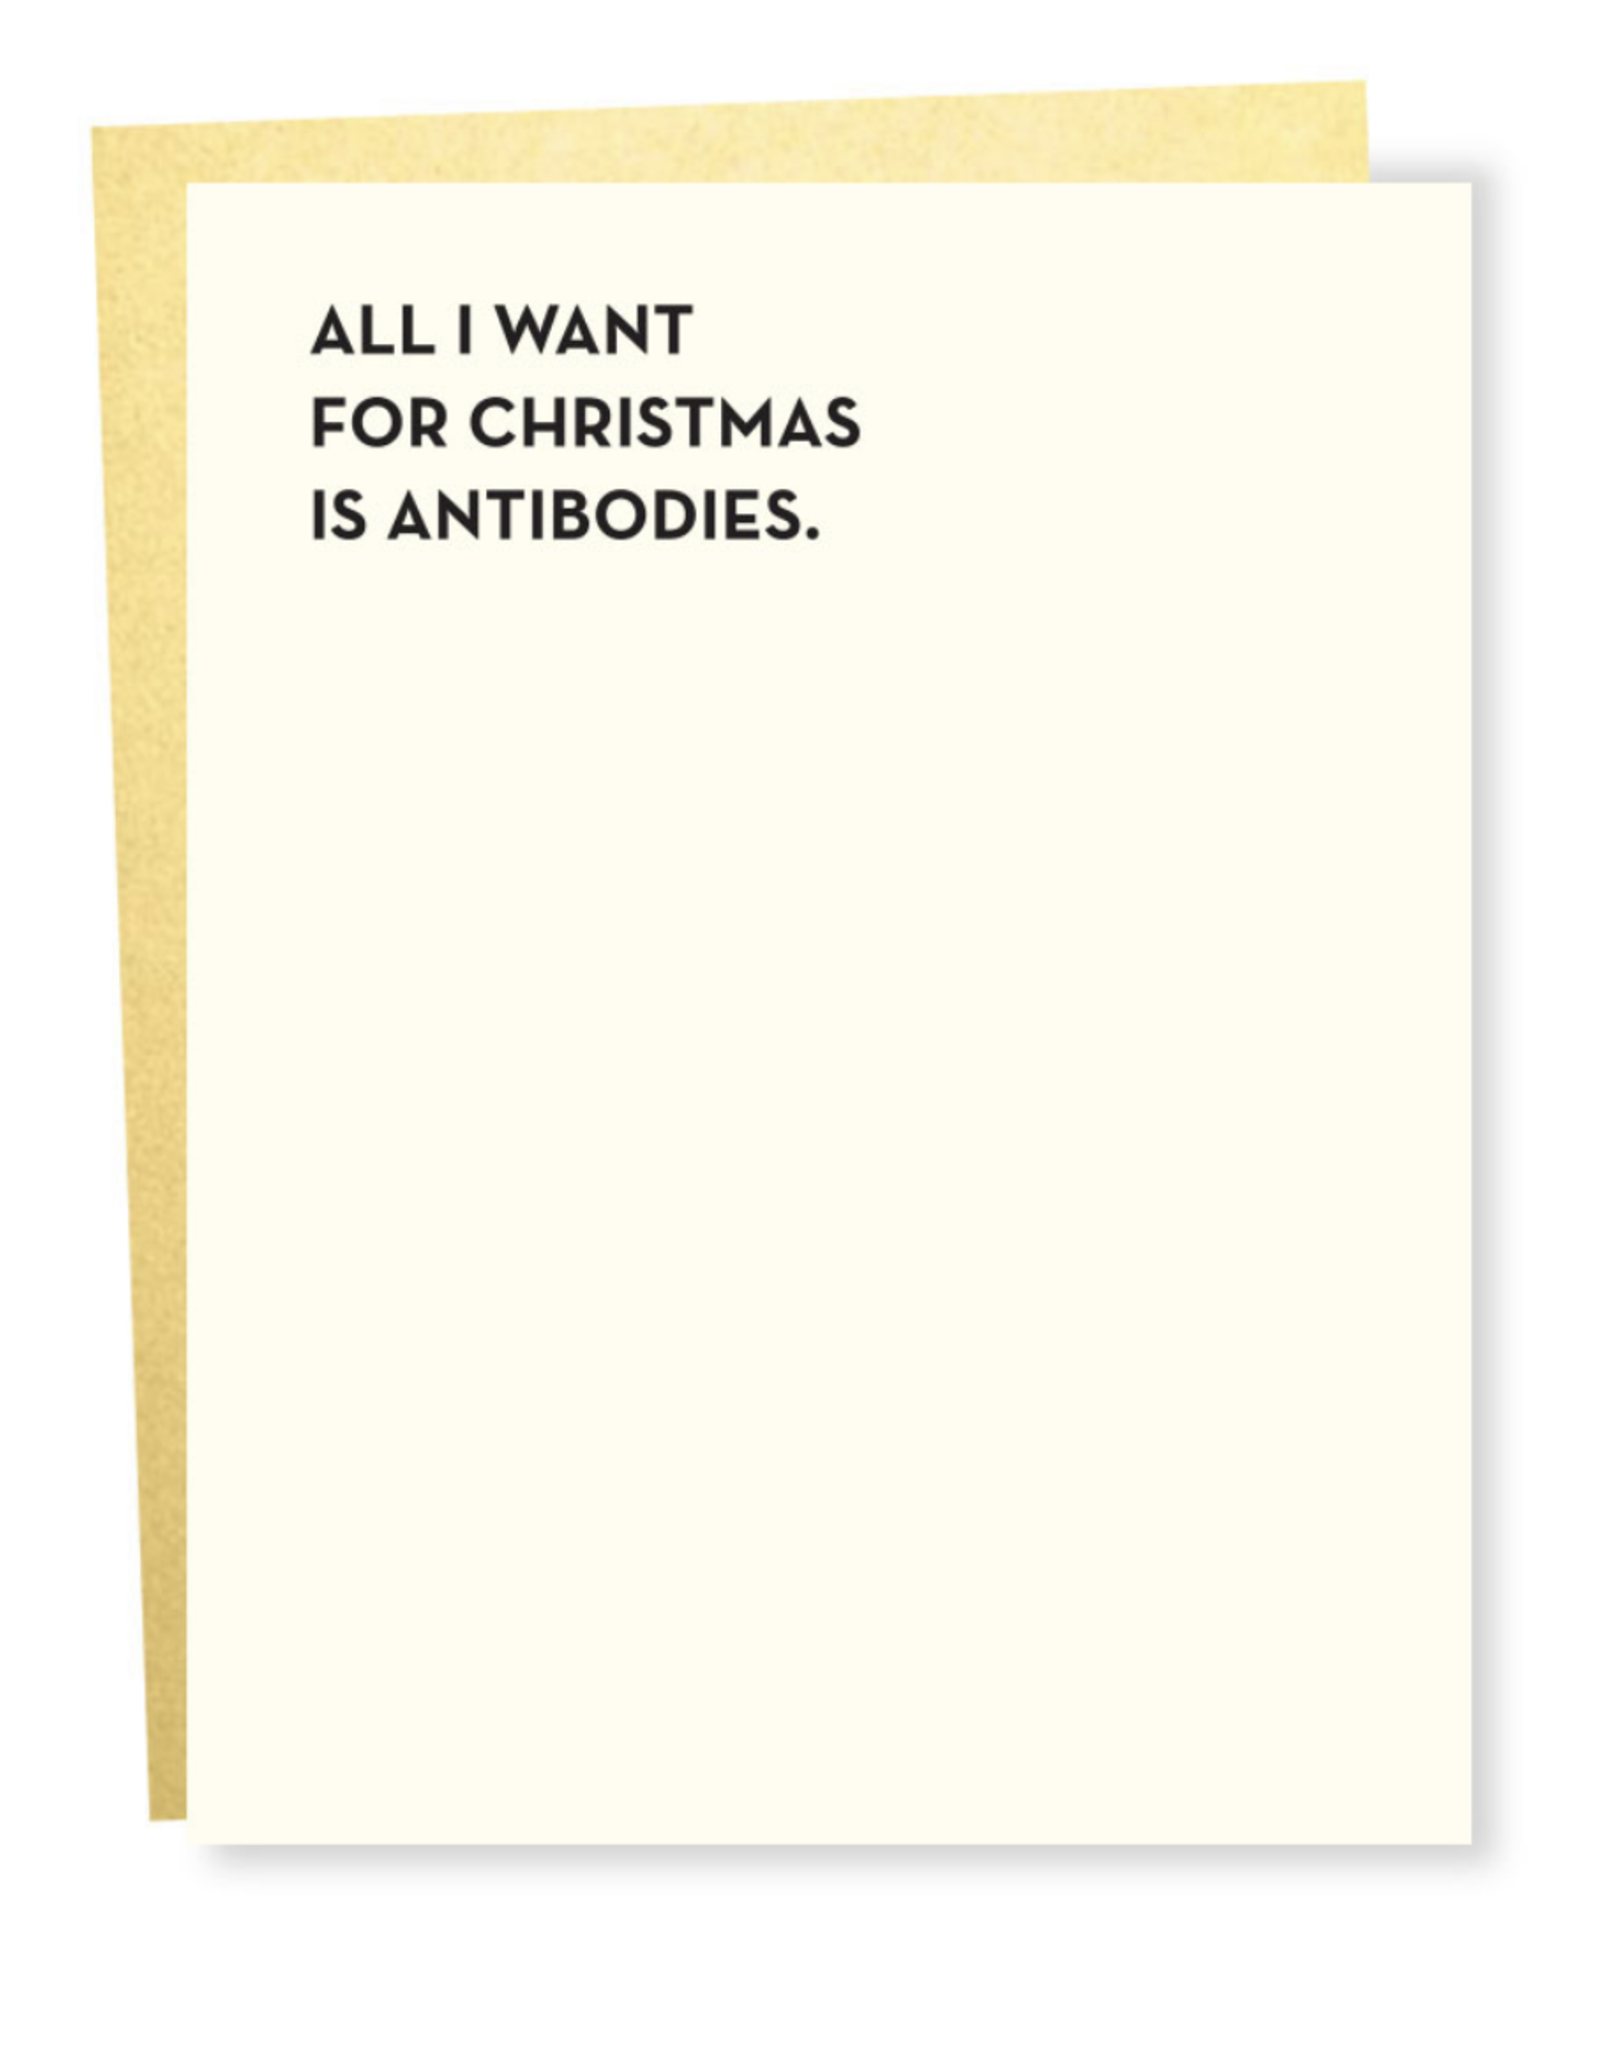 All I Want For Christmas is Antibodies Greeting Card